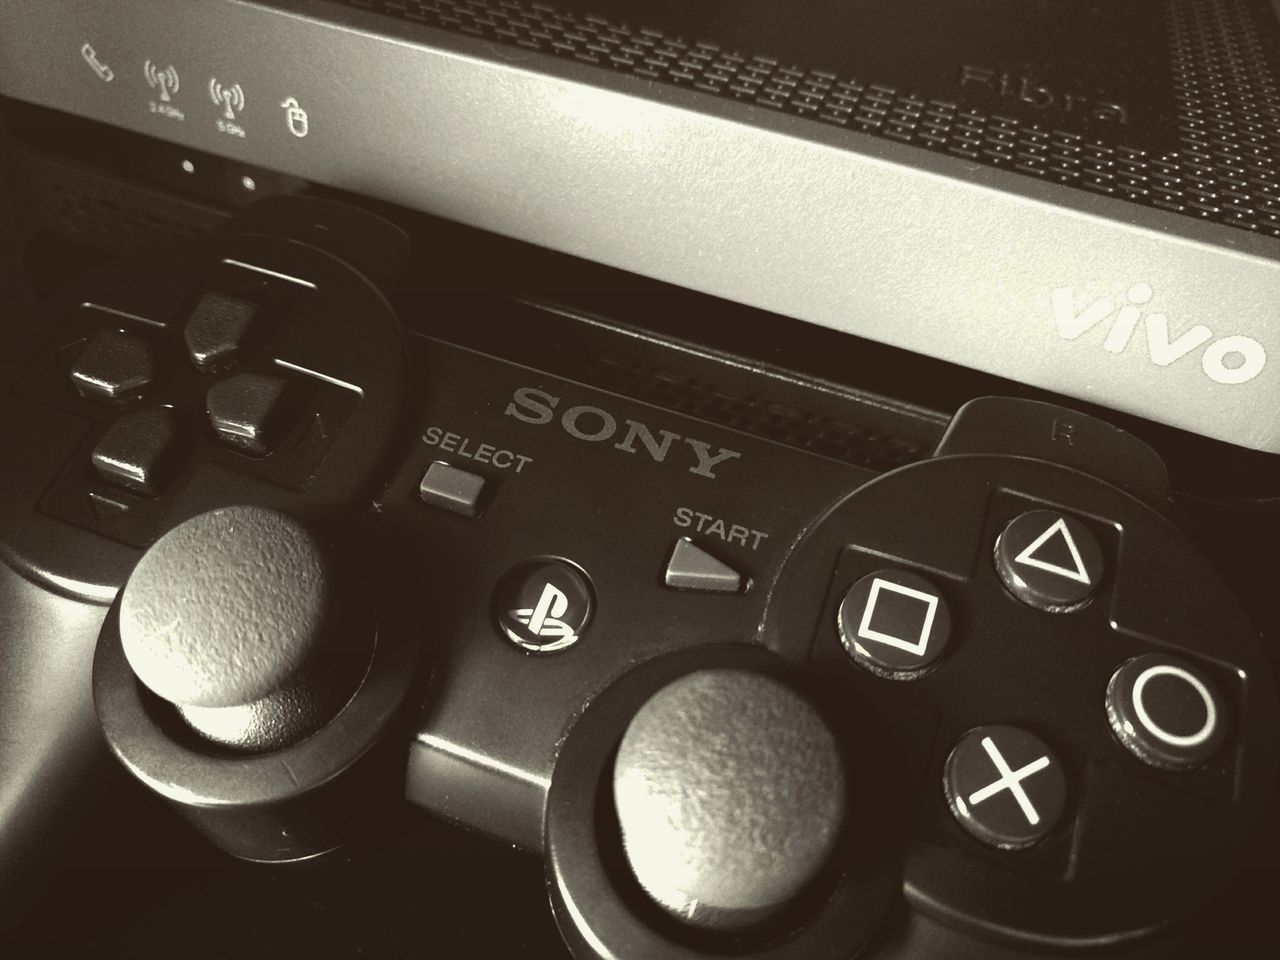 Technology Indoors  No People Nopeople Smartphonephotography EyeEm Best Shots MotoZPlay Monochrome Photography Nophotoshop Modern Ps3controller Modem Entertainment Games OnlineGames Communication Sony Playstation3 Sony